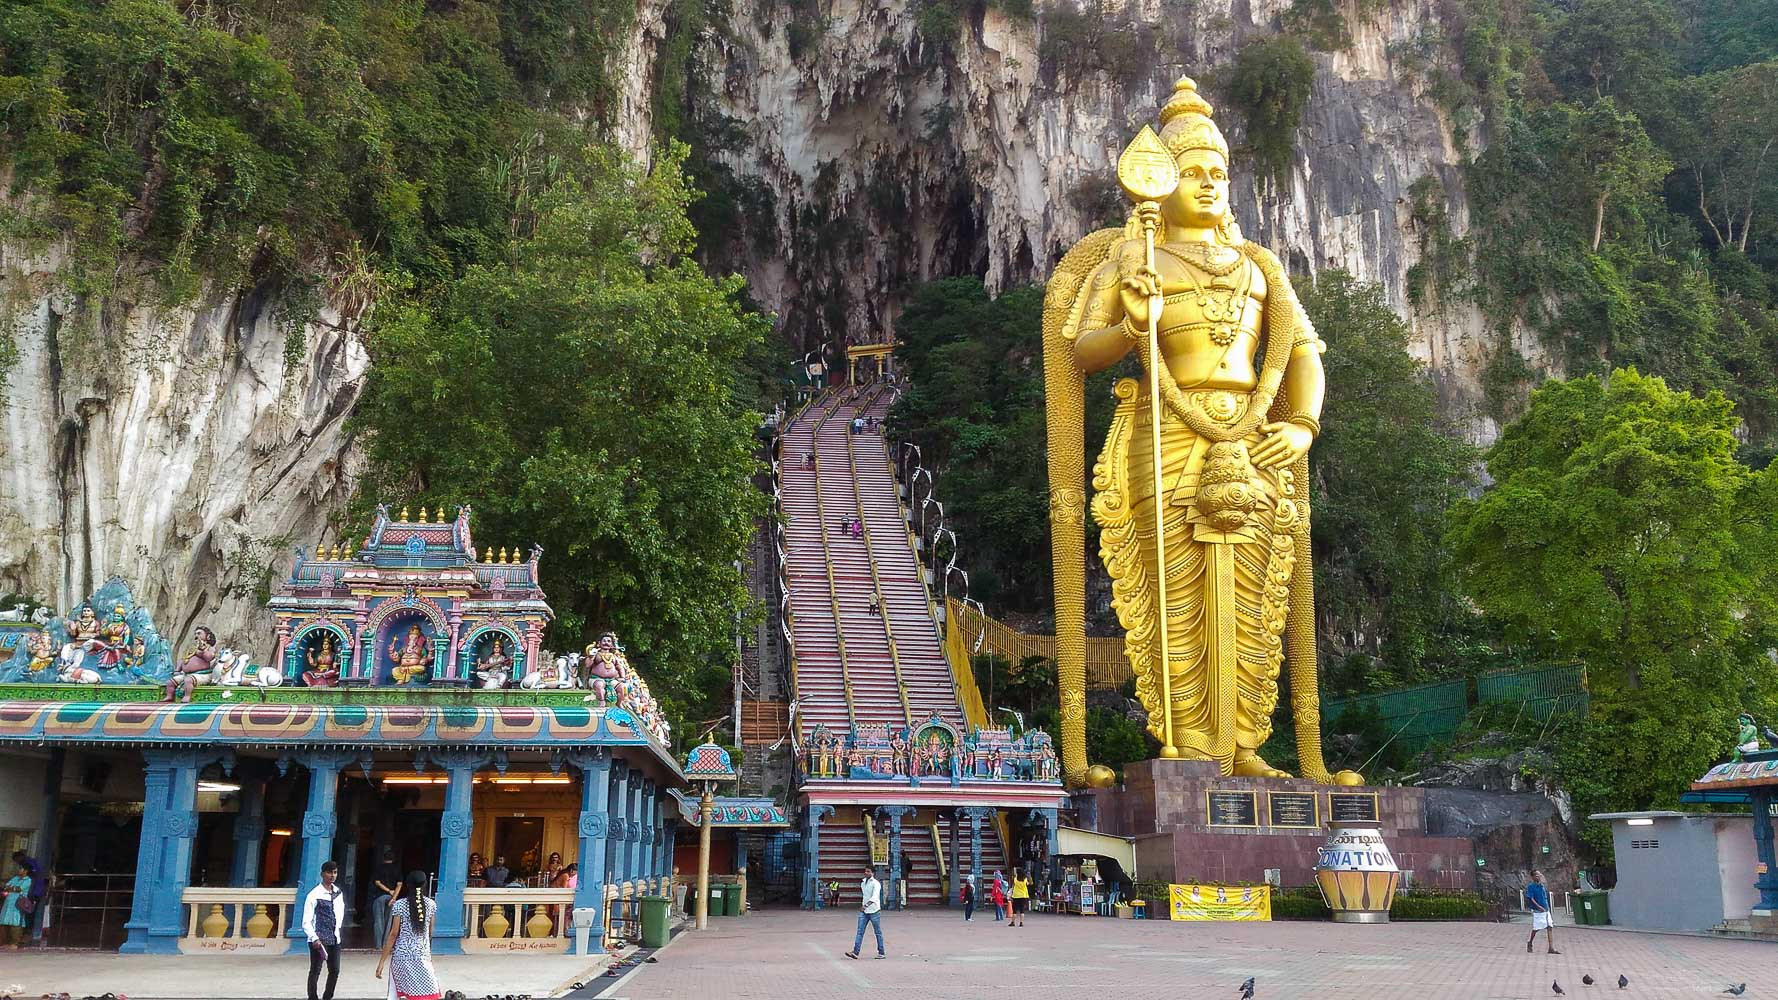 A large Murugan statue will greet you at the entrance of Batu caves